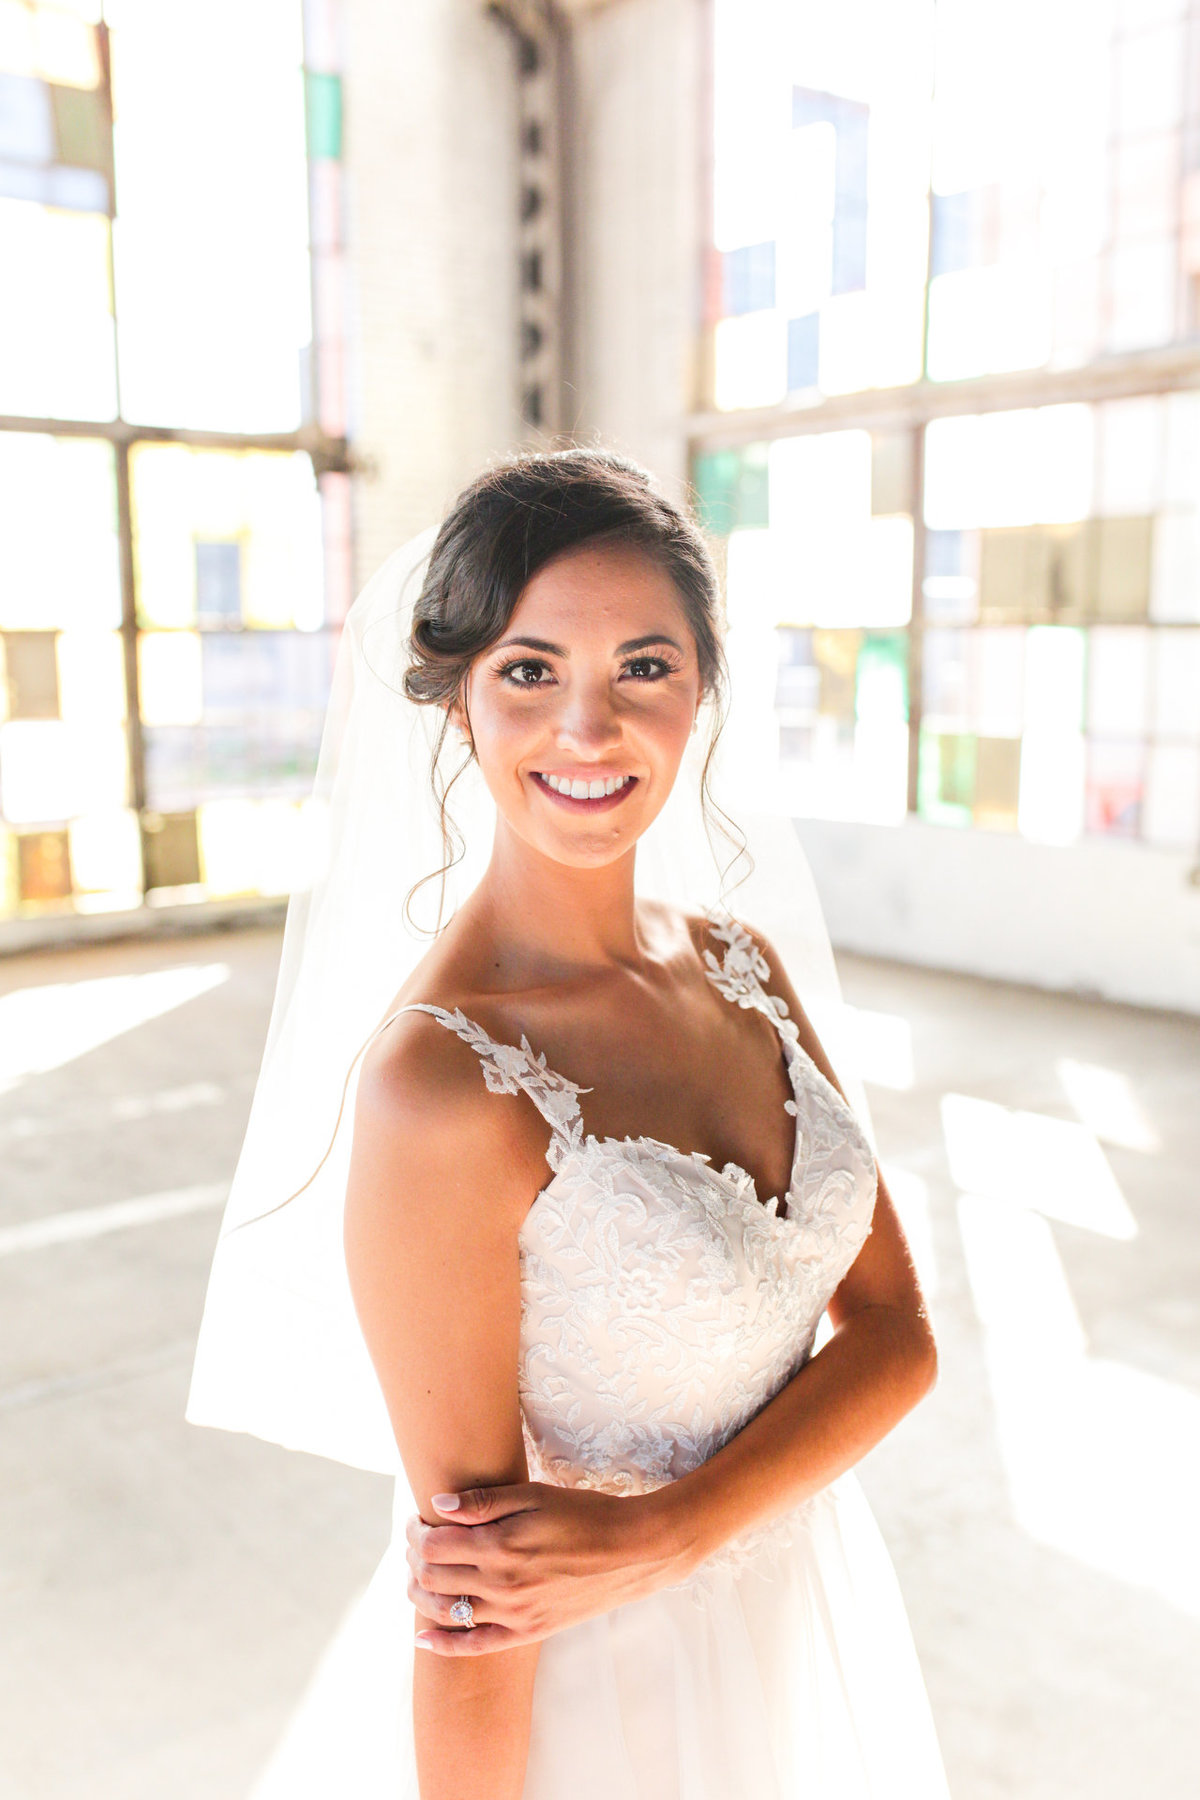 Albuquerque Wedding Photographer_Abq Rail Yards Reception_www.tylerbrooke.com_028